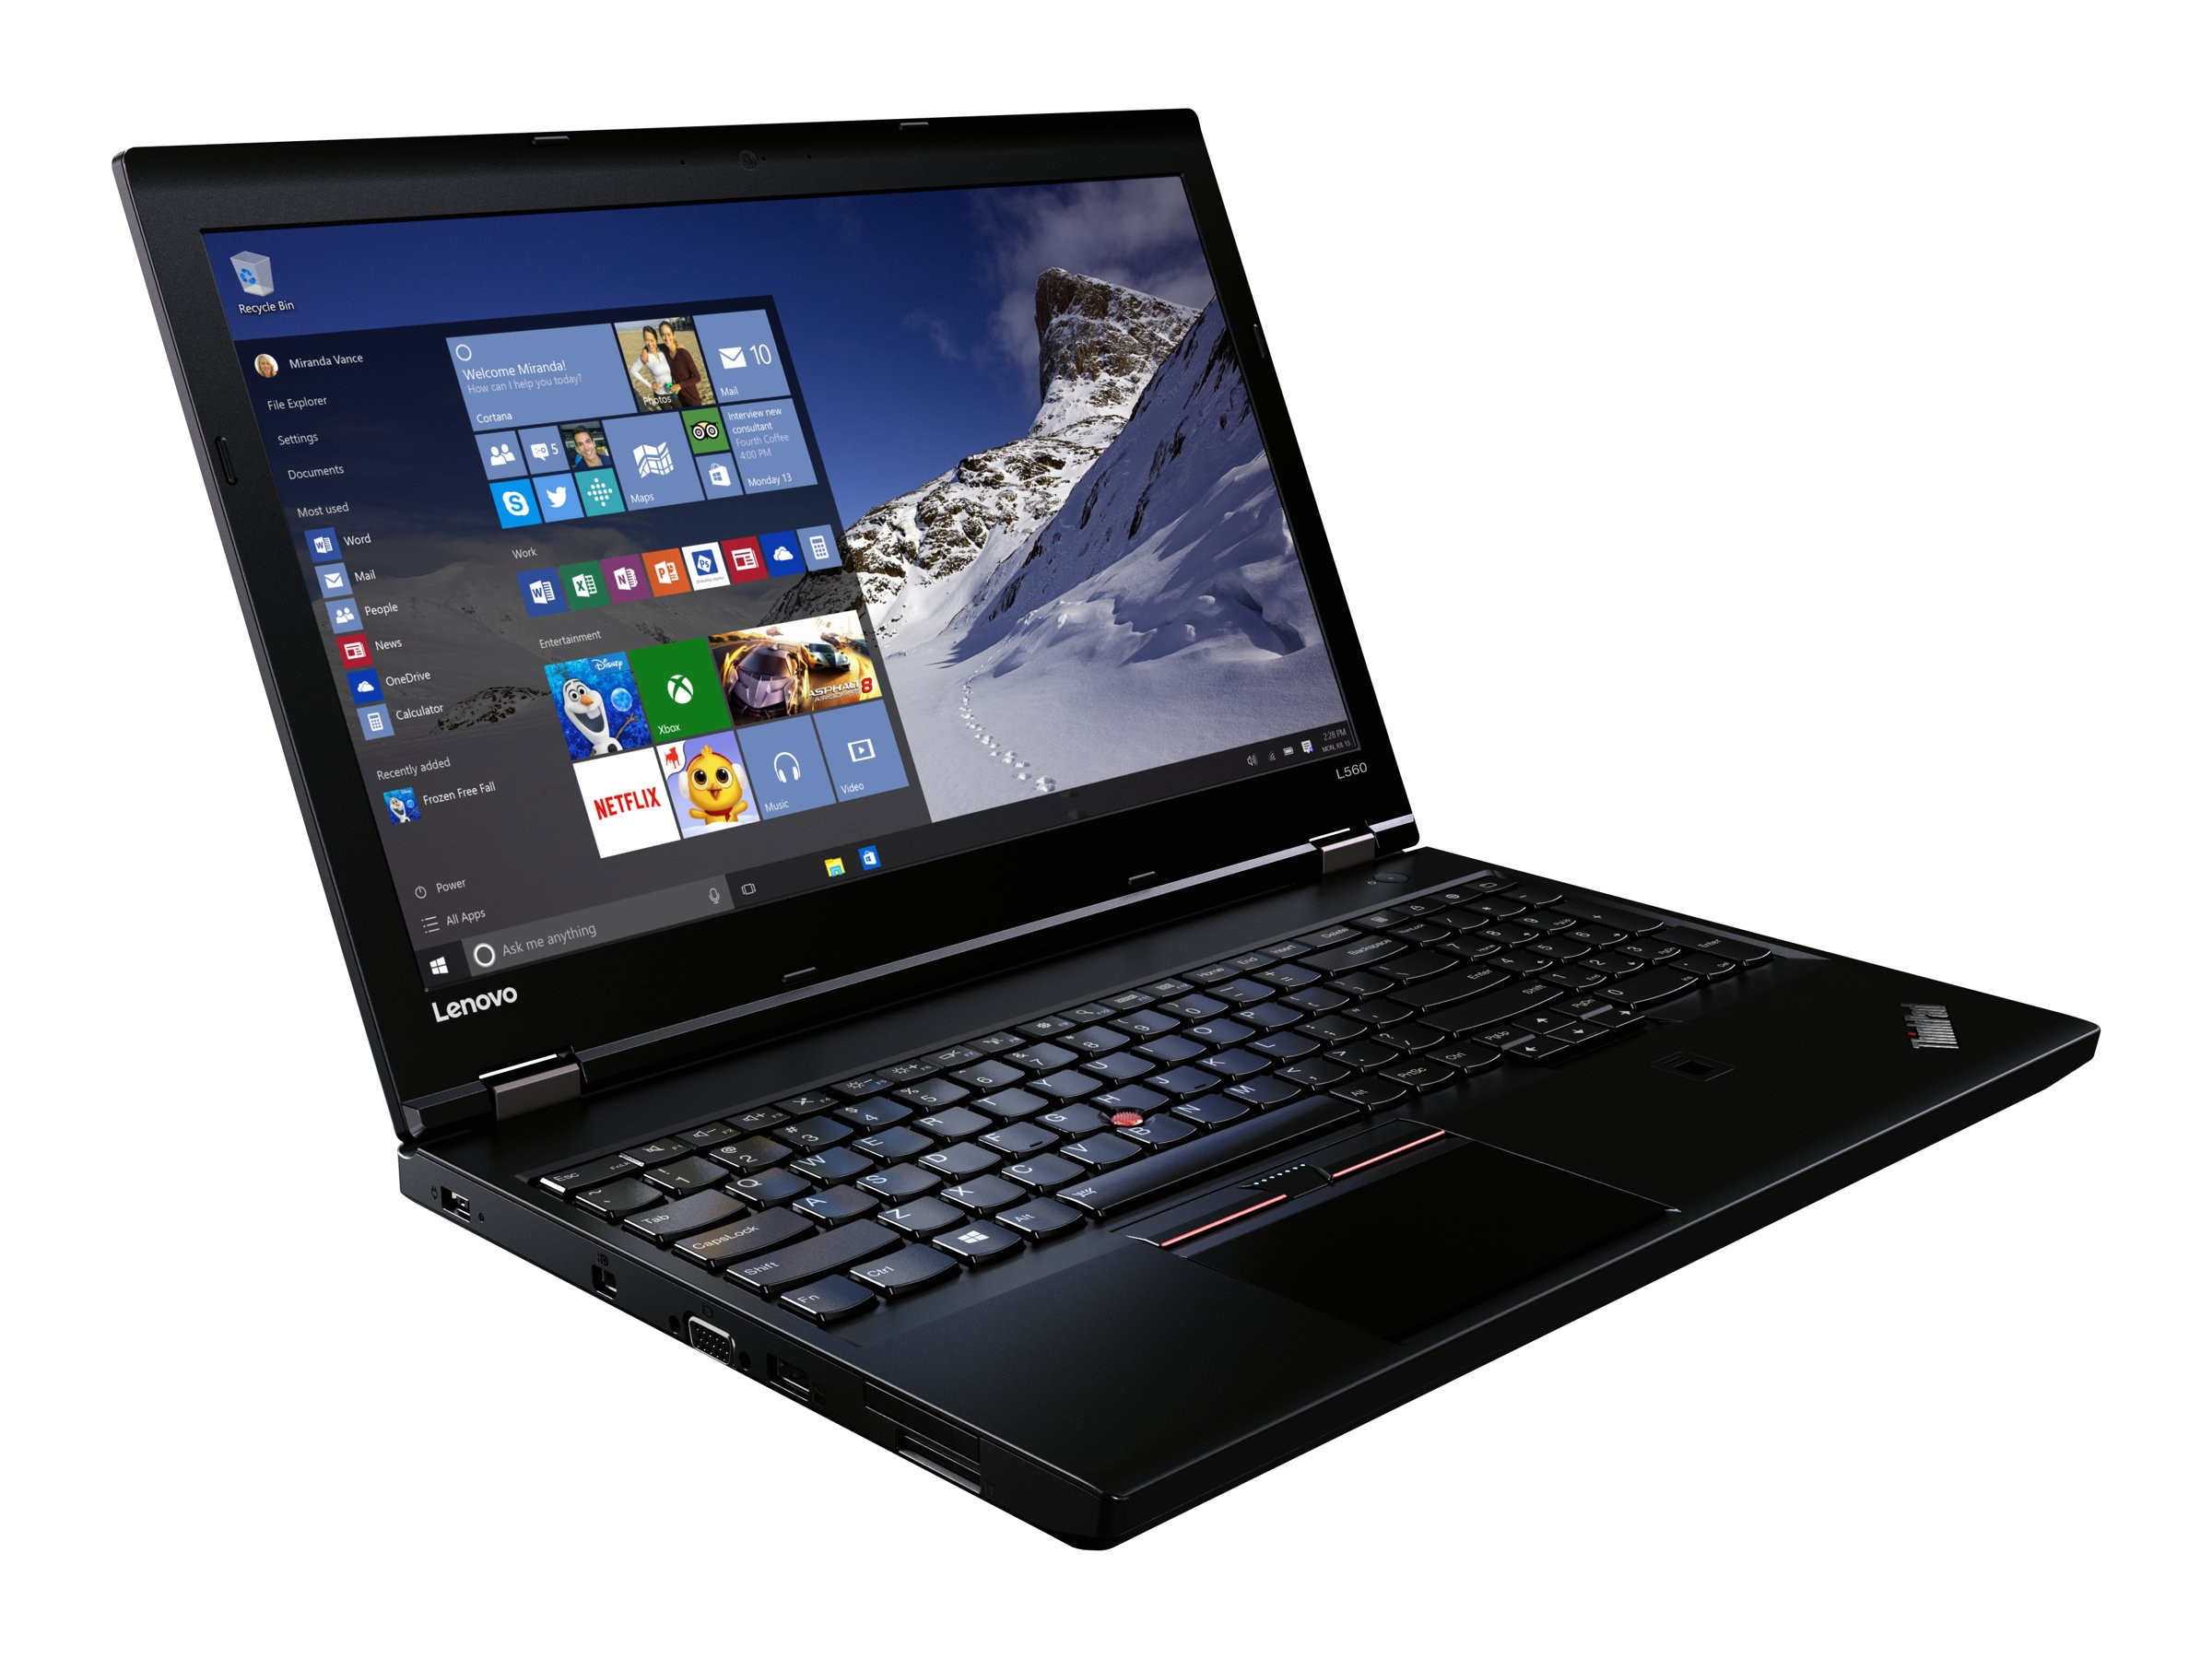 Lenovo TopSeller ThinkPad L560 2.4GHz Core i5 15.6in display